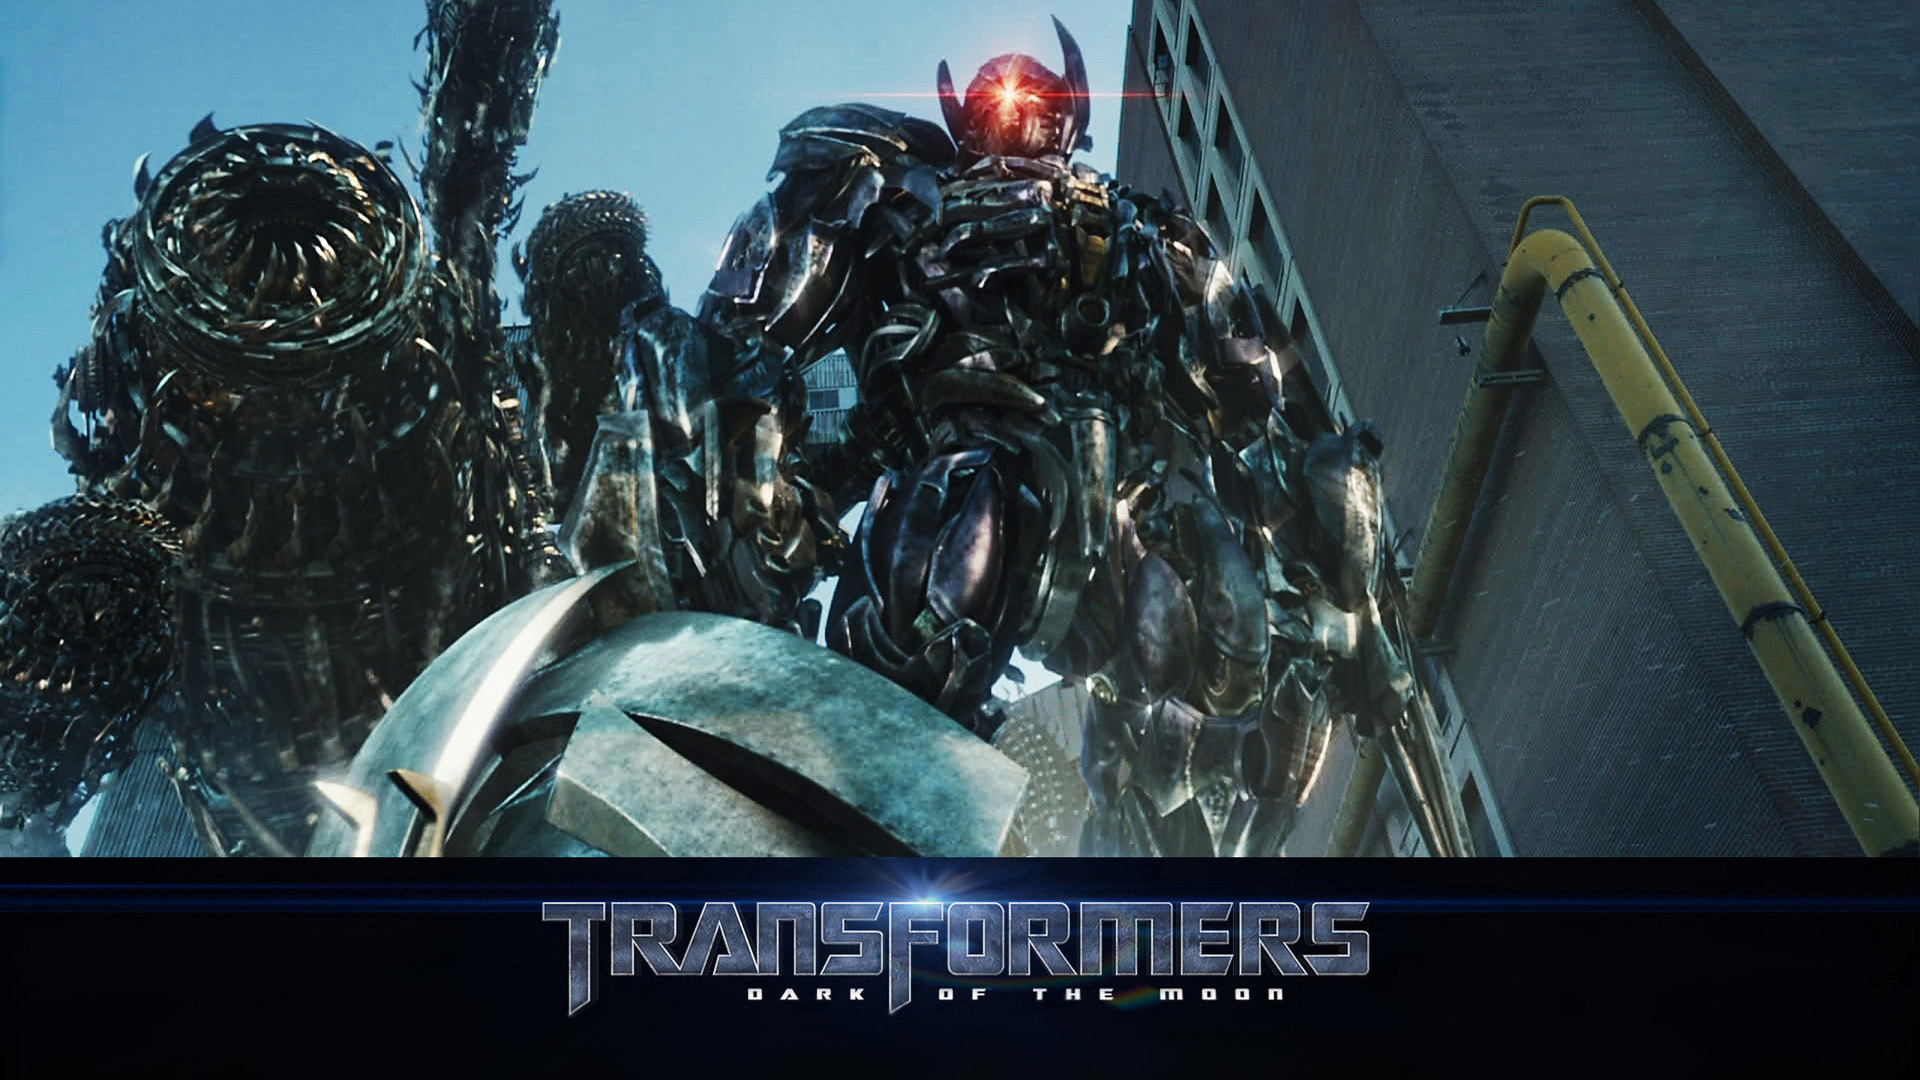 Iphone Shockwave Wallpapers: Transformers 3 Dark Of The Moon Wallpapers (1920 X 1080